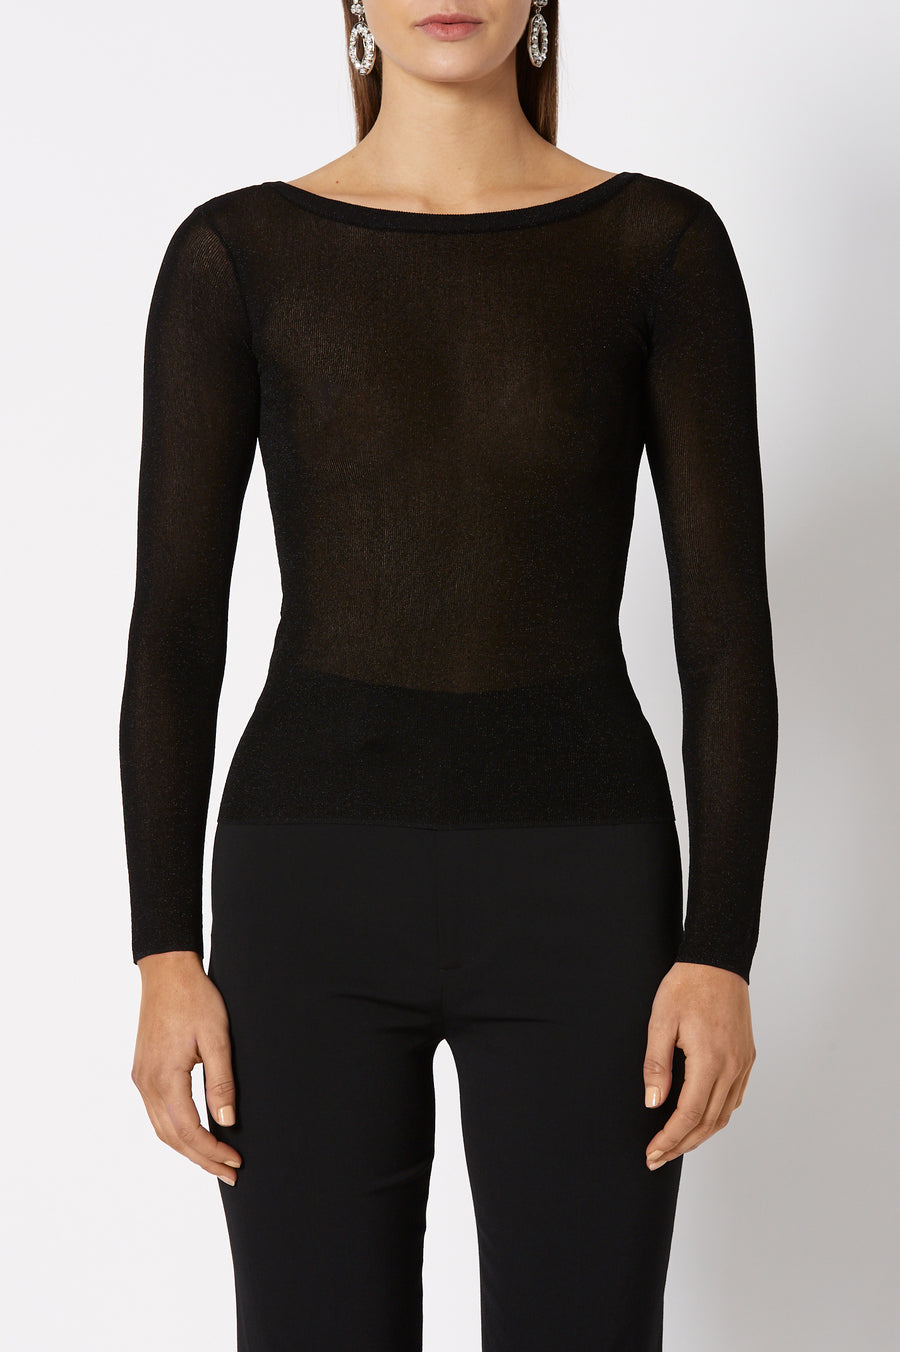 Sparkle Rib Boat Neck Sweater has a boatneck and is designed for a slim fit, color black